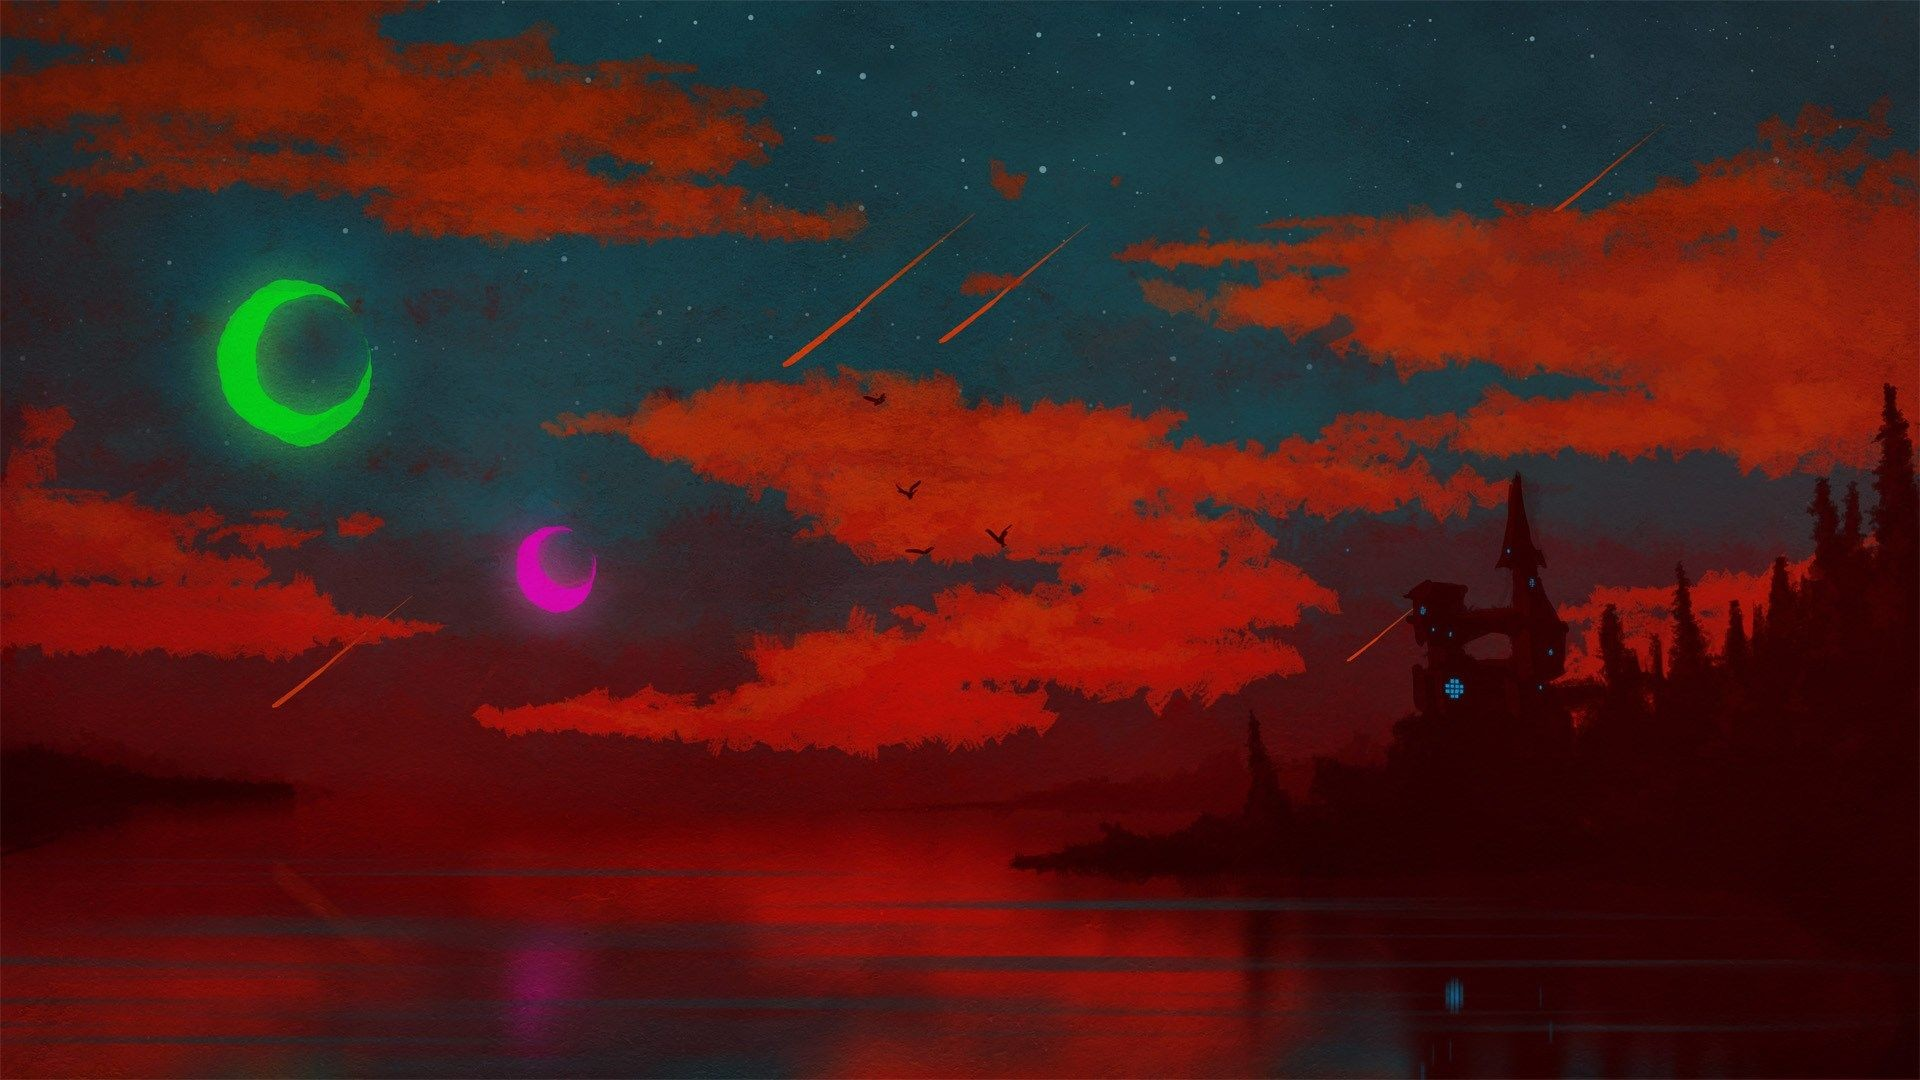 Res: 1920x1080, homestuck wallpaper hd backgrounds images, 277 kB - Greshawn Edwards